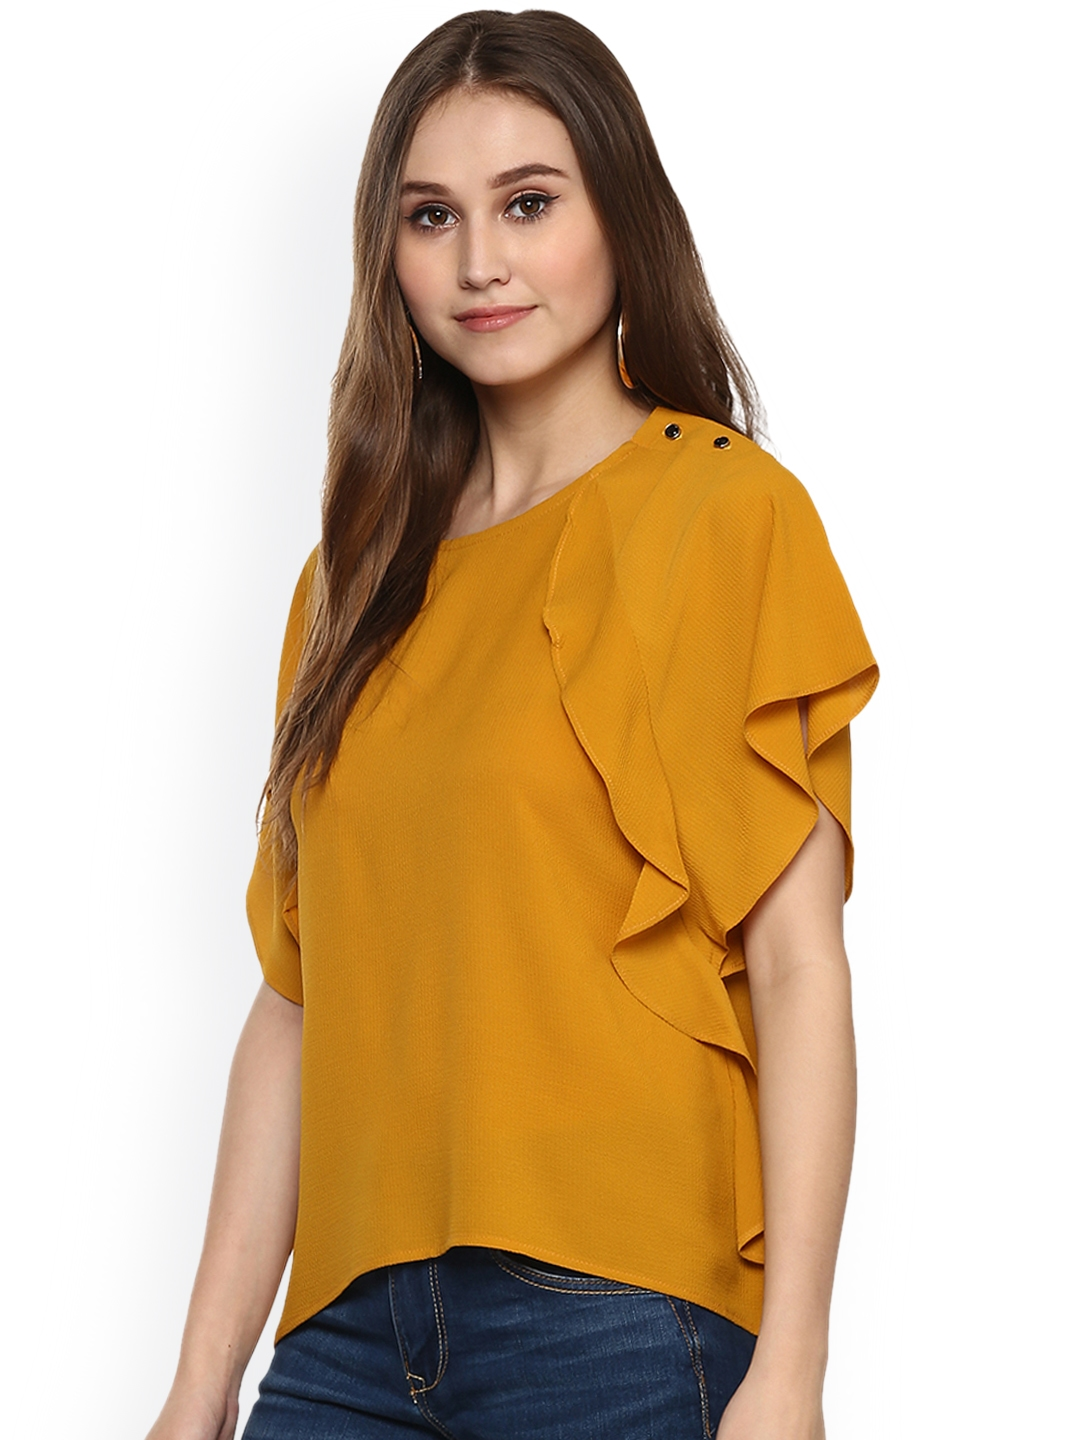 d3b02ff64bc5e1 Buy Harpa Women Mustard Yellow Solid Top - Tops for Women 2103862 ...